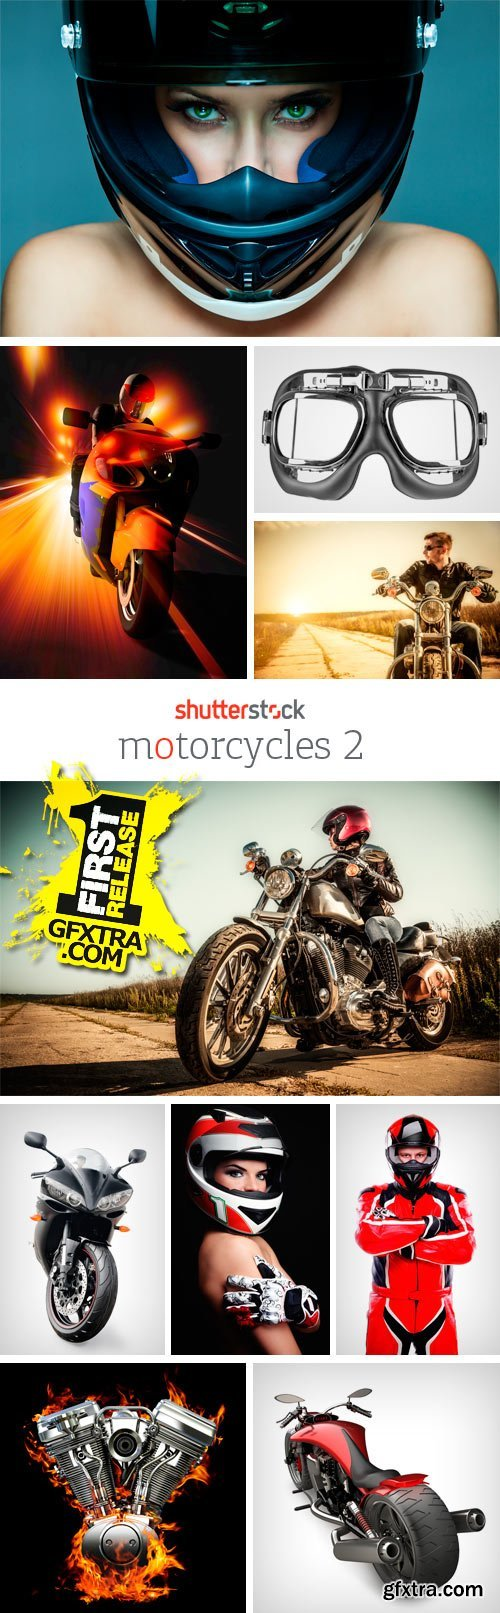 Amazing SS - Motorcycles 2, 25xJPGs